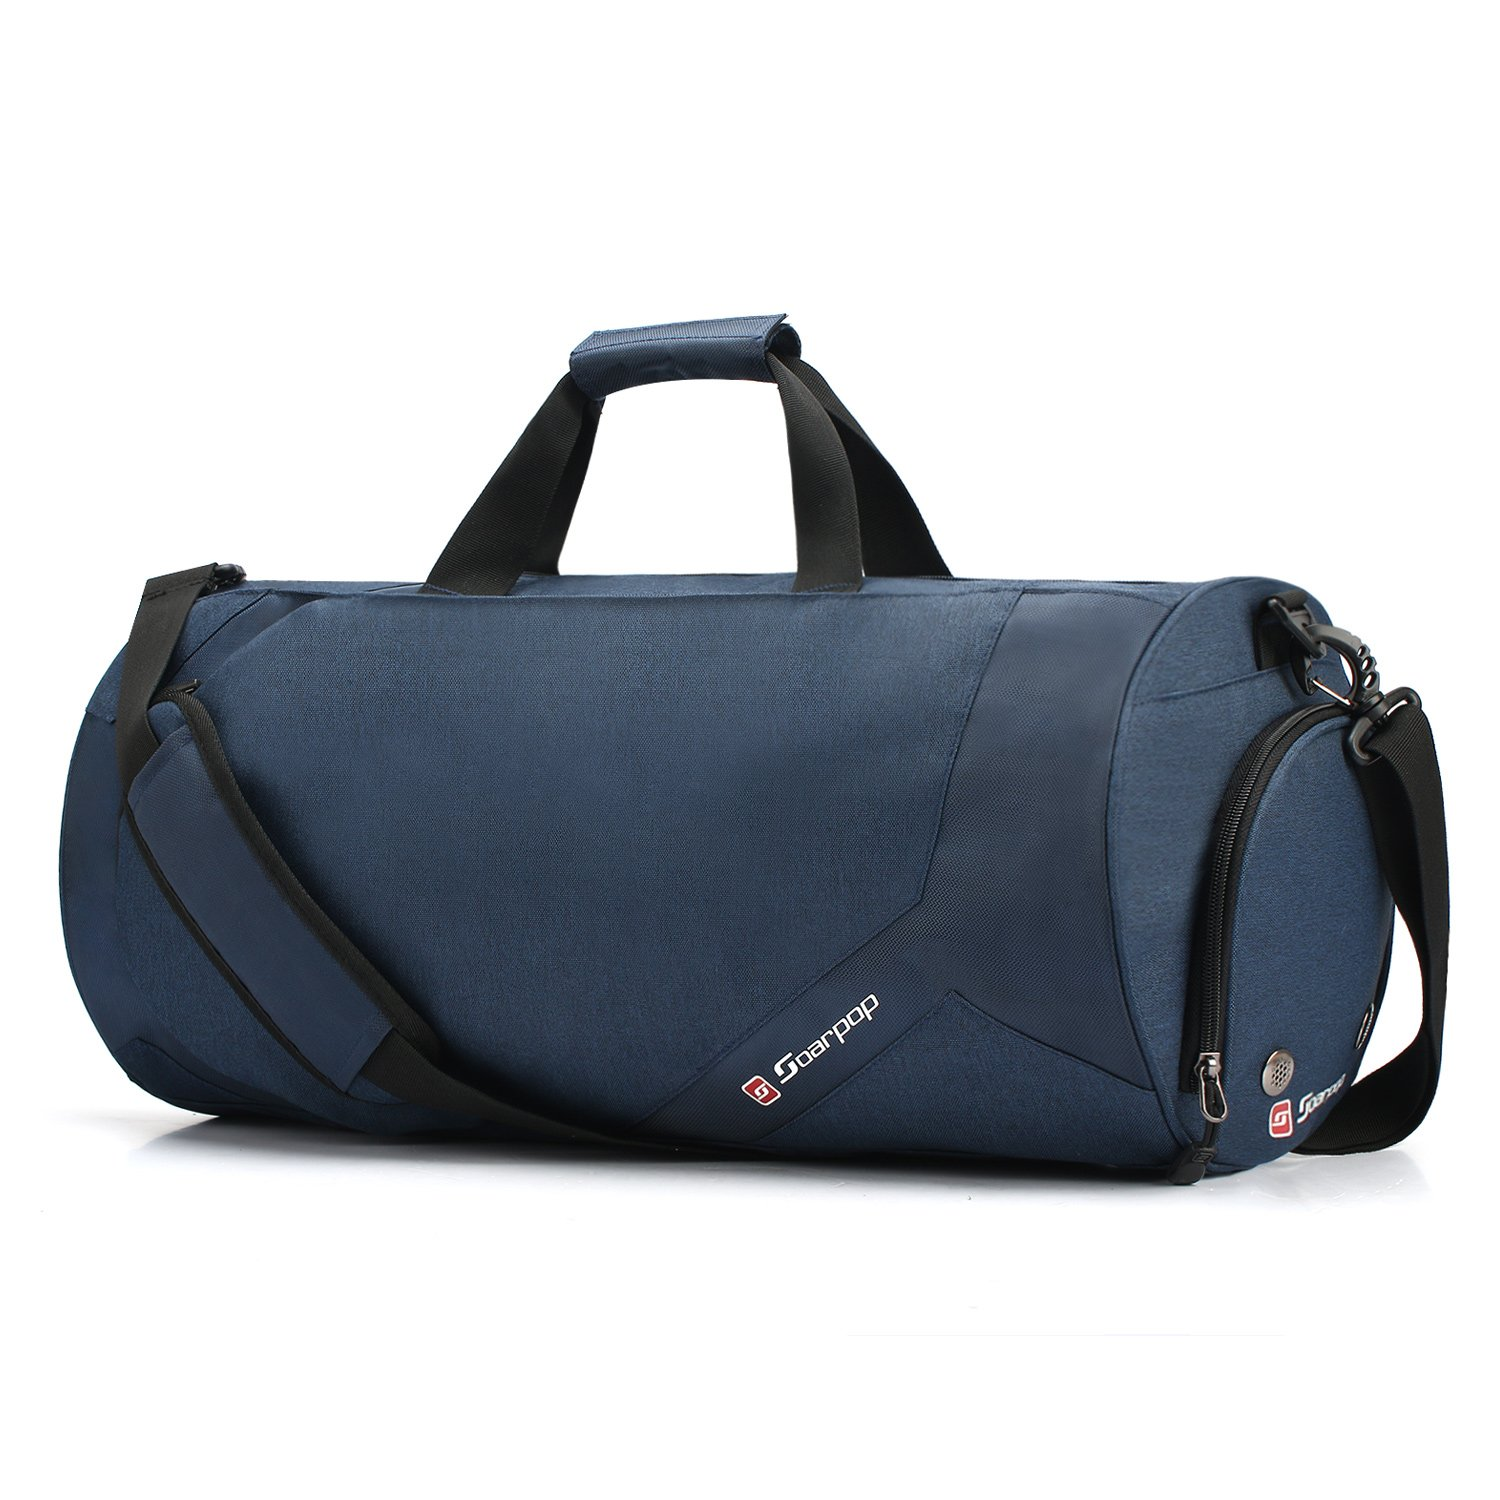 Travel Luggage Gym Lightweight Tote Duffel Bag Travel overnight weekender bag with Shoe Pouch SOARPOP BH7870